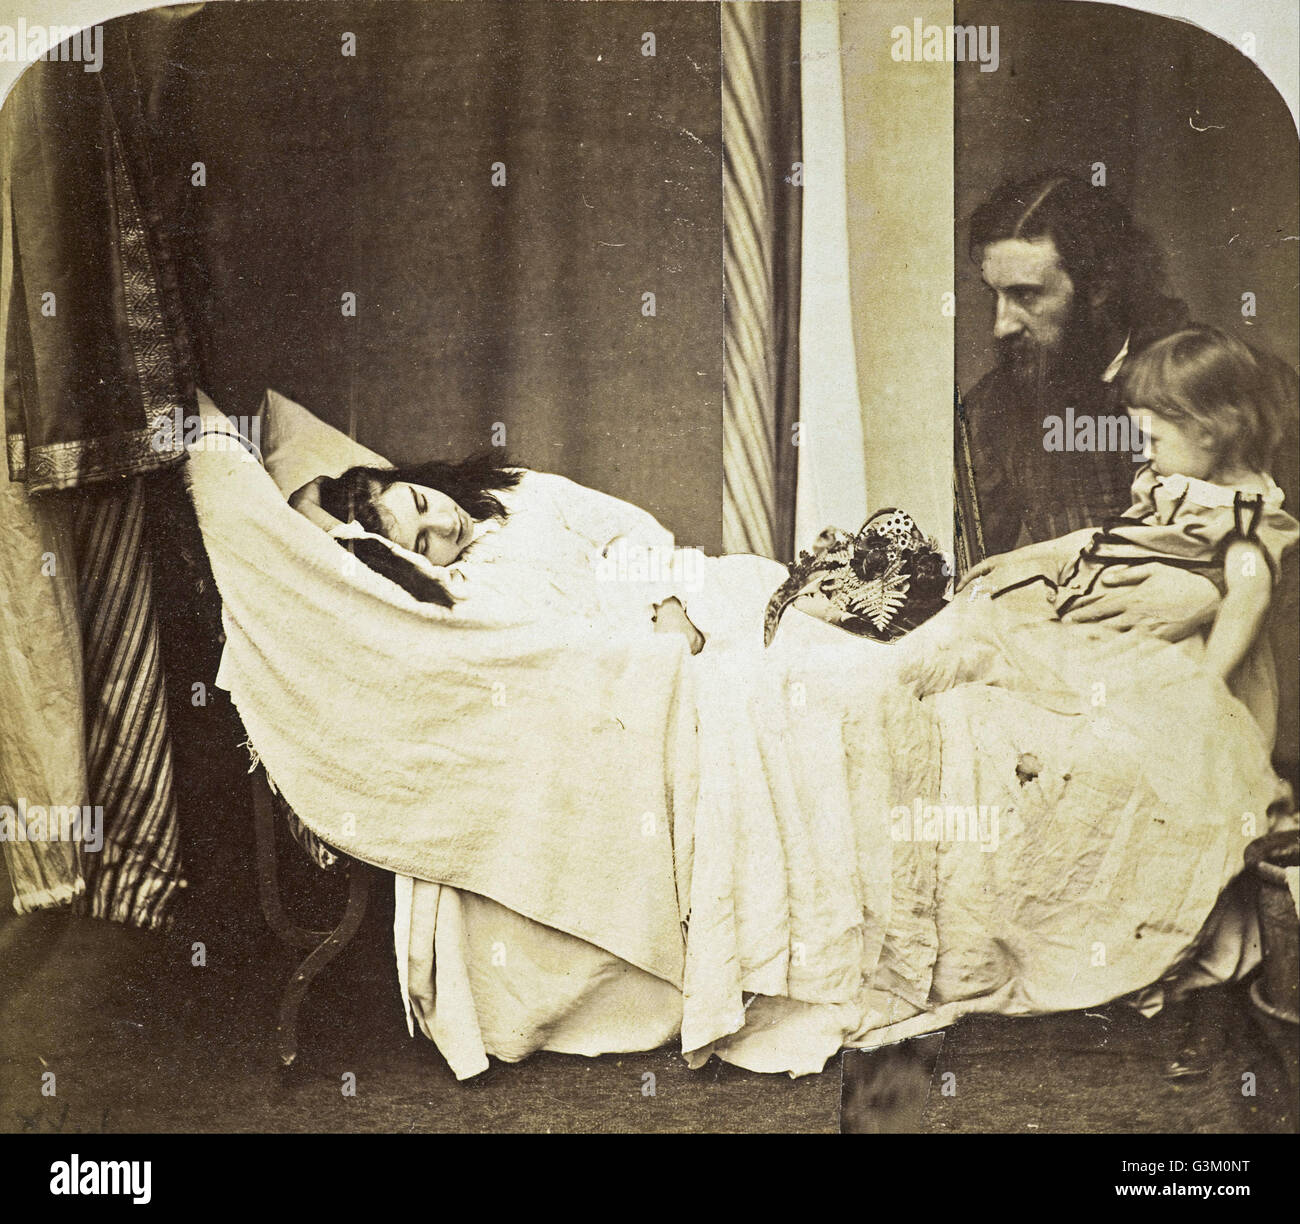 Rev. Charles Lutwidge Dodgson, 'Lewis Carroll' - 'Mary J. MacDonald dreaming of her father - Stock Image